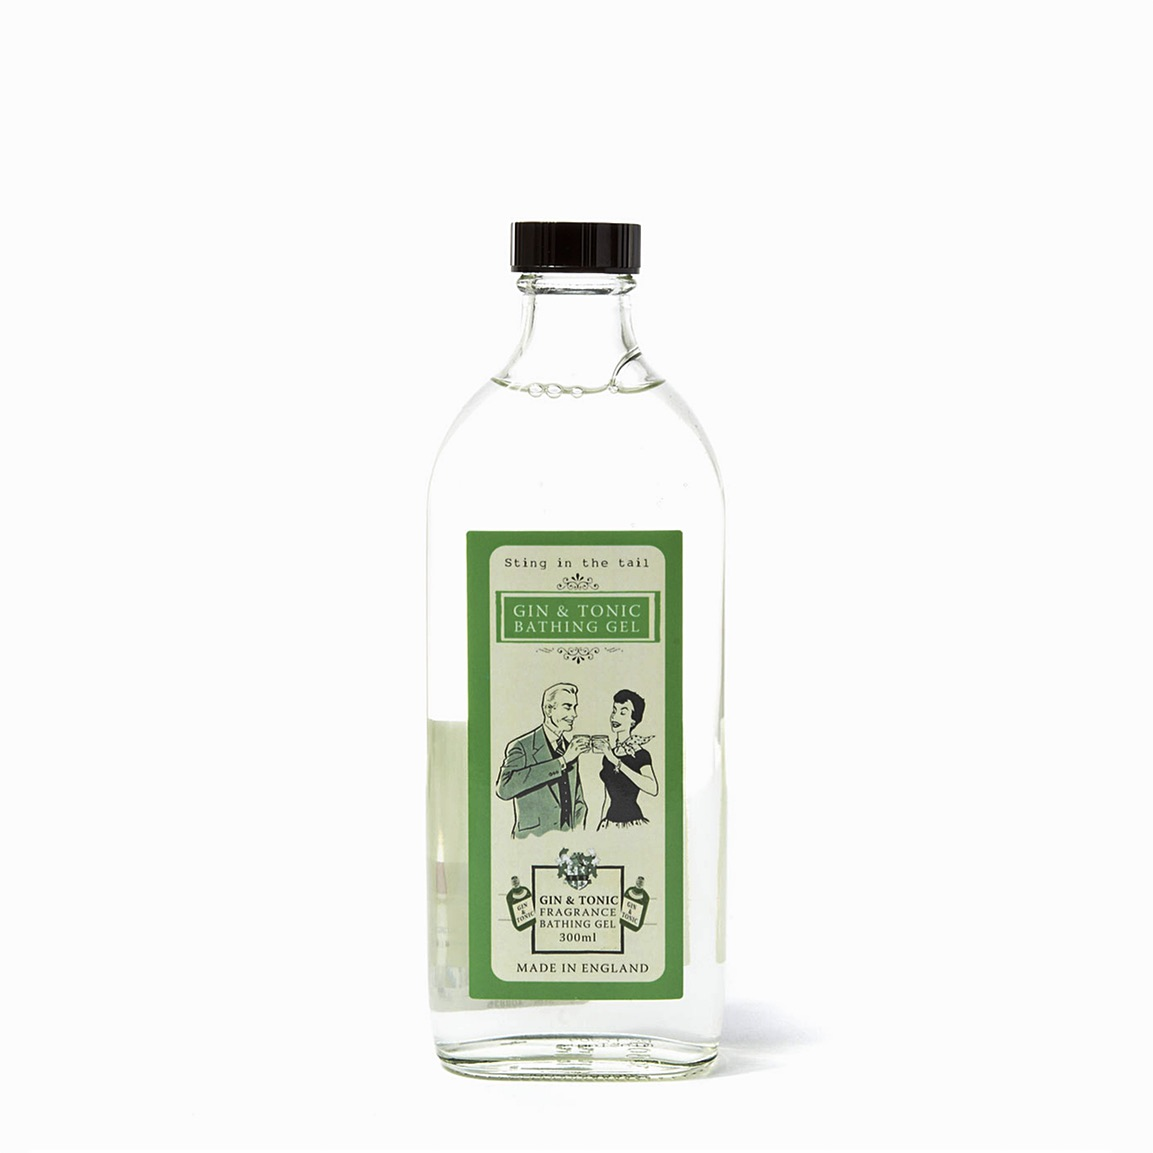 Gin & Tonic Bathing Gel